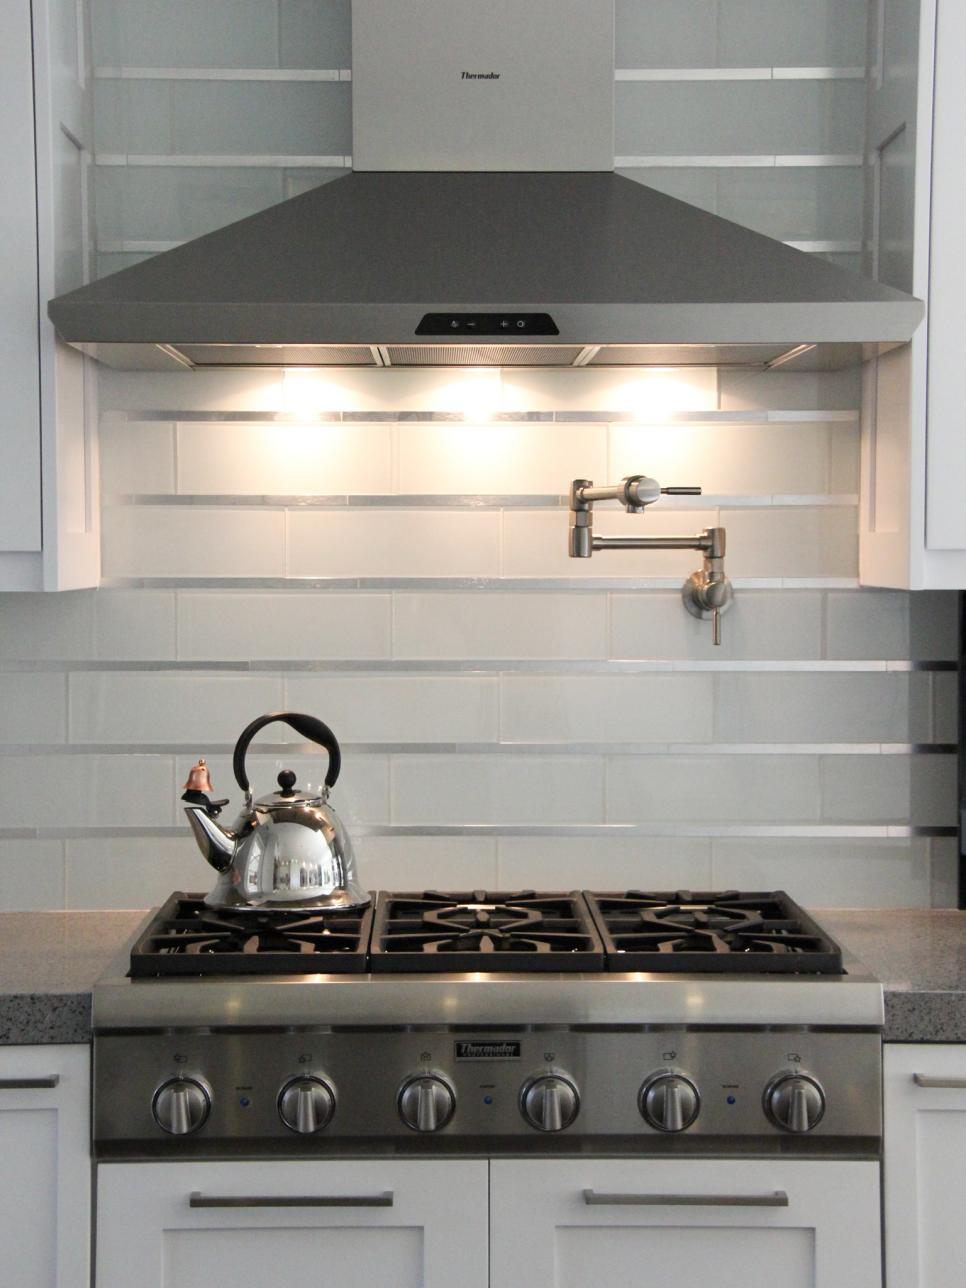 Stainless Steel Backsplash: The Pros and The Cons on kitchen backsplash over stove, kitchen stove tile, kitchen stove heat shield, kitchen backsplash trends, kitchen countertops and backsplashes ideas, kitchen backsplash with granite, kitchen backsplash styles, kitchen palette interchangeable backsplash, kitchen hardware trends 2014, kitchen backsplash behind stove, tuscan style kitchen design ideas, glass tile kitchen design ideas, kitchen stove design ideas, kitchen backsplash panels, kitchen backsplash with espresso cabinet white, kitchen stove no backsplash, kitchen backsplash designs, a frame kitchen ideas, kitchen arches with molding, kitchen stove fire,